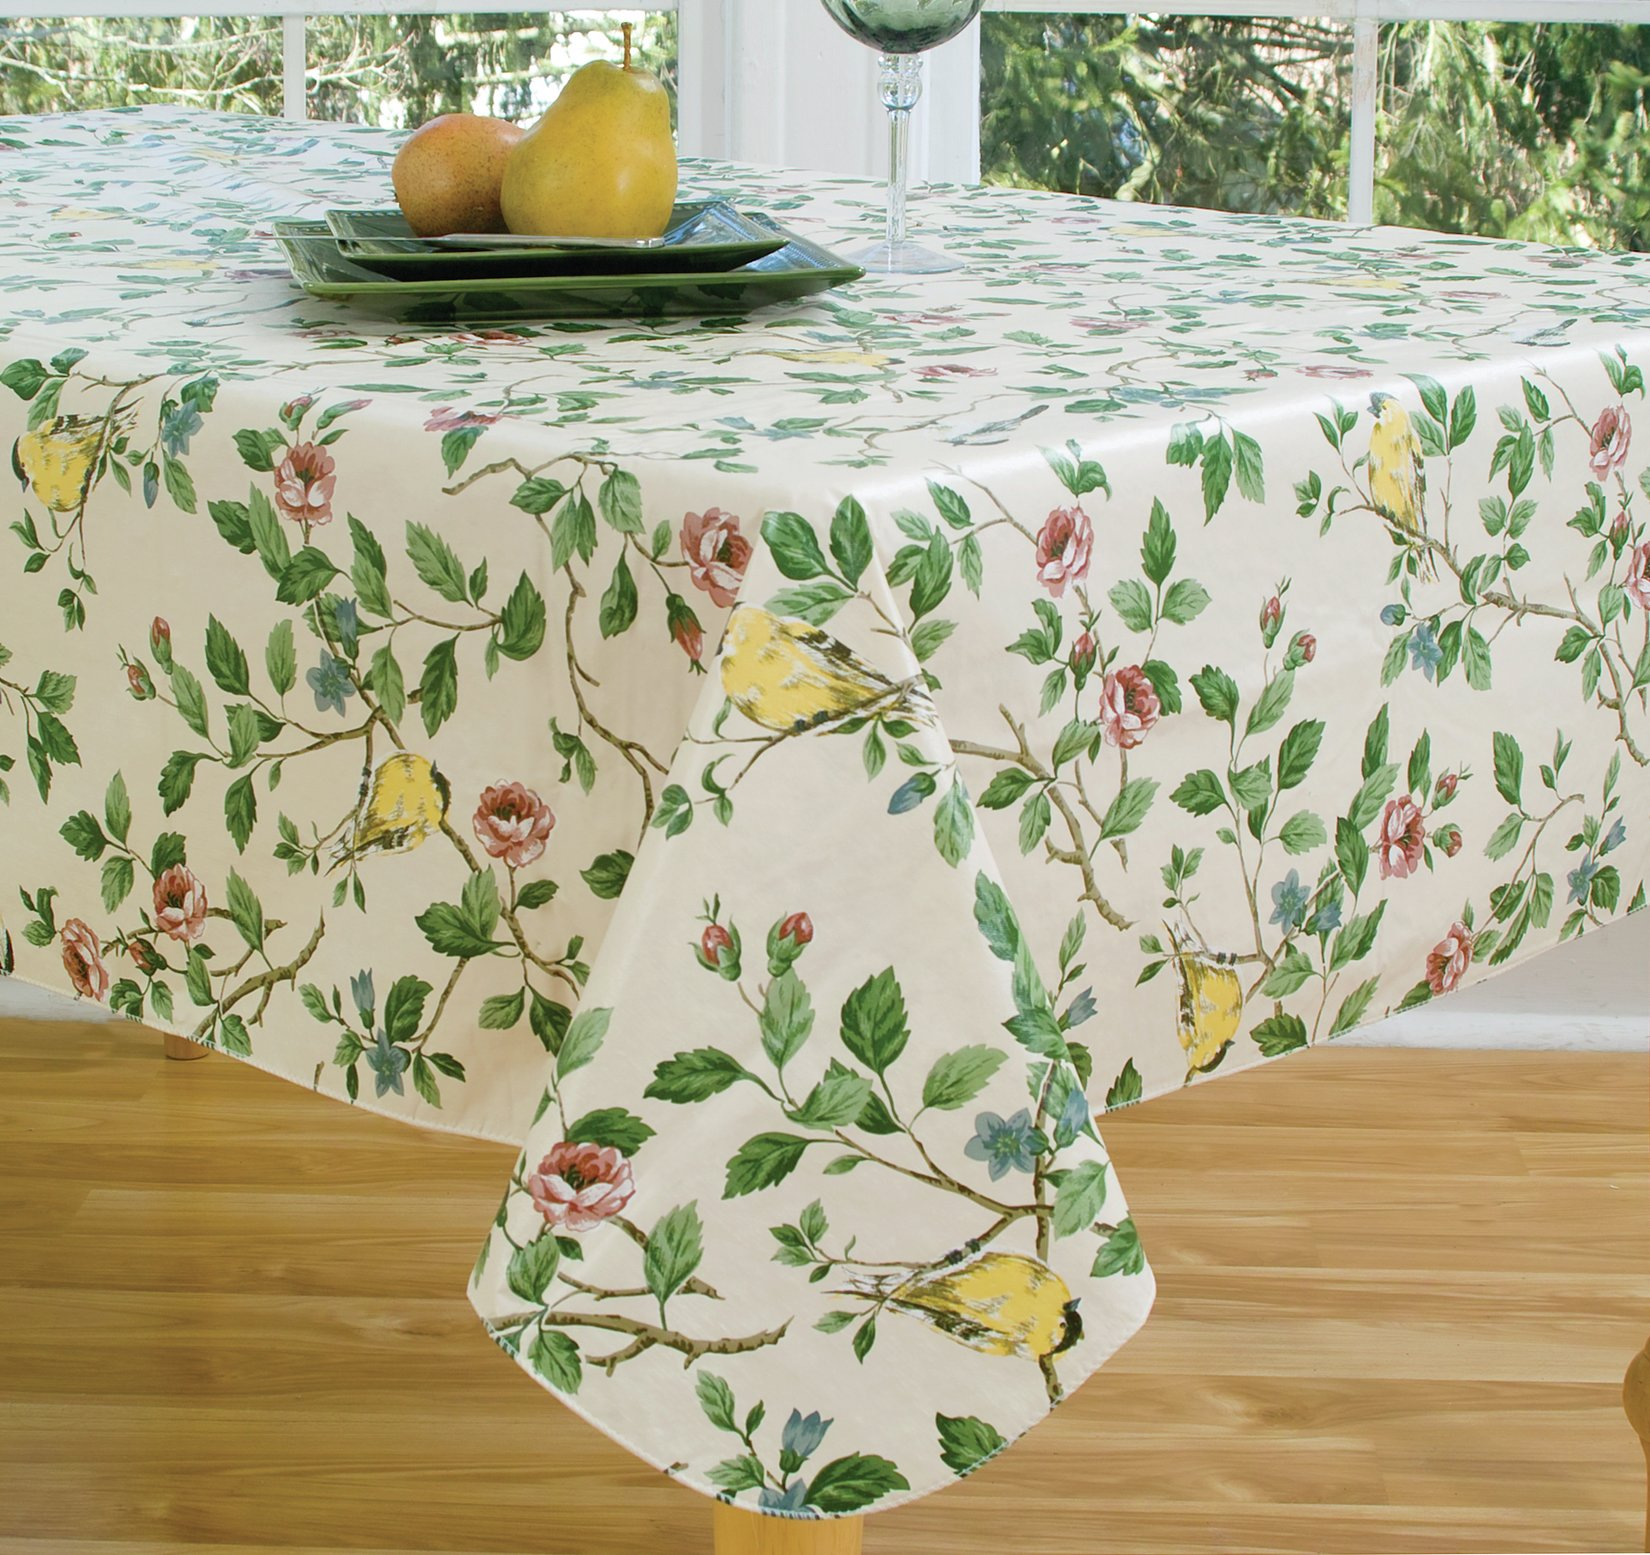 waterproof table cloth linder vinyl tablecloth round accent hairpin legs farmhouse door mosaic tile bistro and chairs coffee ikea living room furniture lawn modern pier one